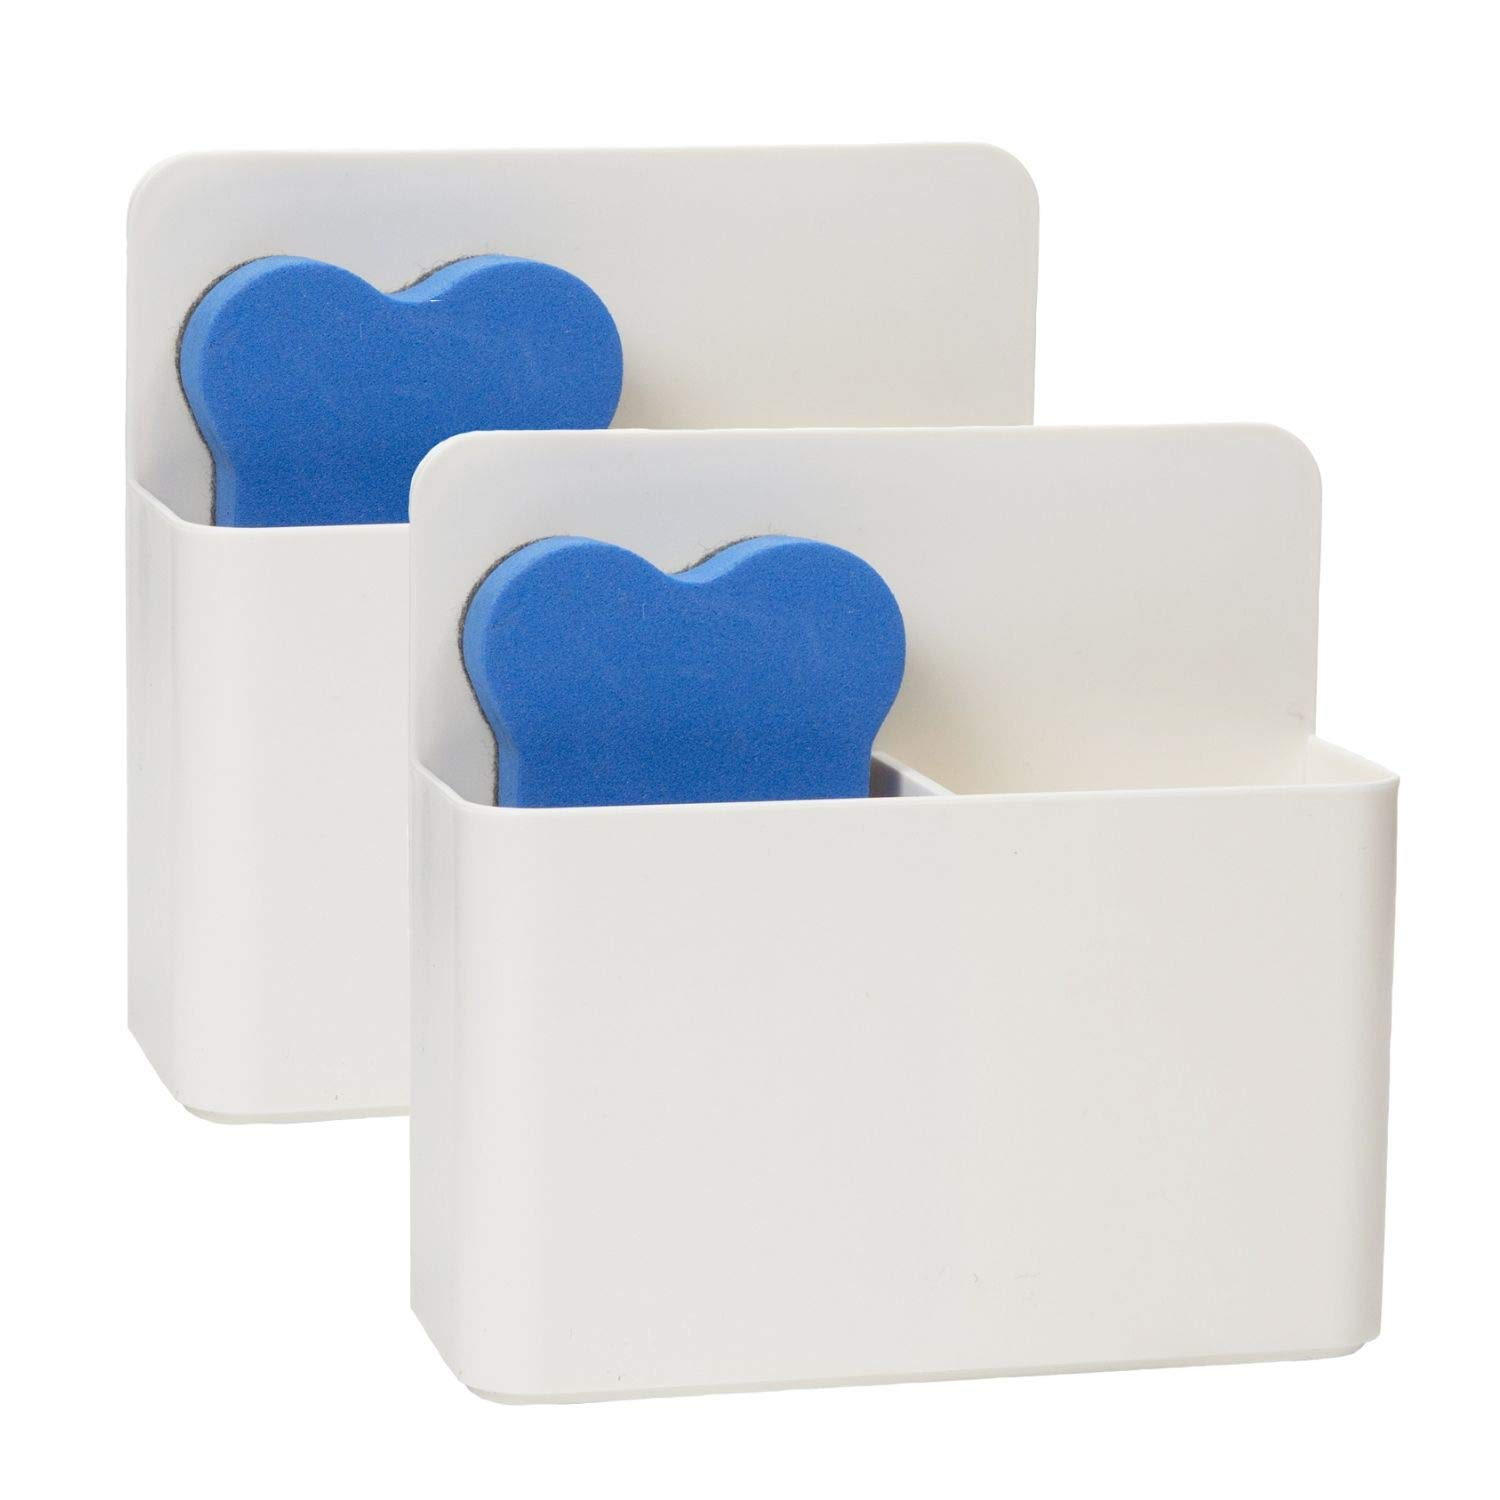 """Houseables Magnetic Dry Erase Holder, Whiteboard Marker Holders, 4.75"""" x 5"""", 2 Pk, Fits 6 Markers, Pen Cup, Storage Organizer, White Board Caddy, with Eraser, for Locker, Accessories, Refrigerator"""